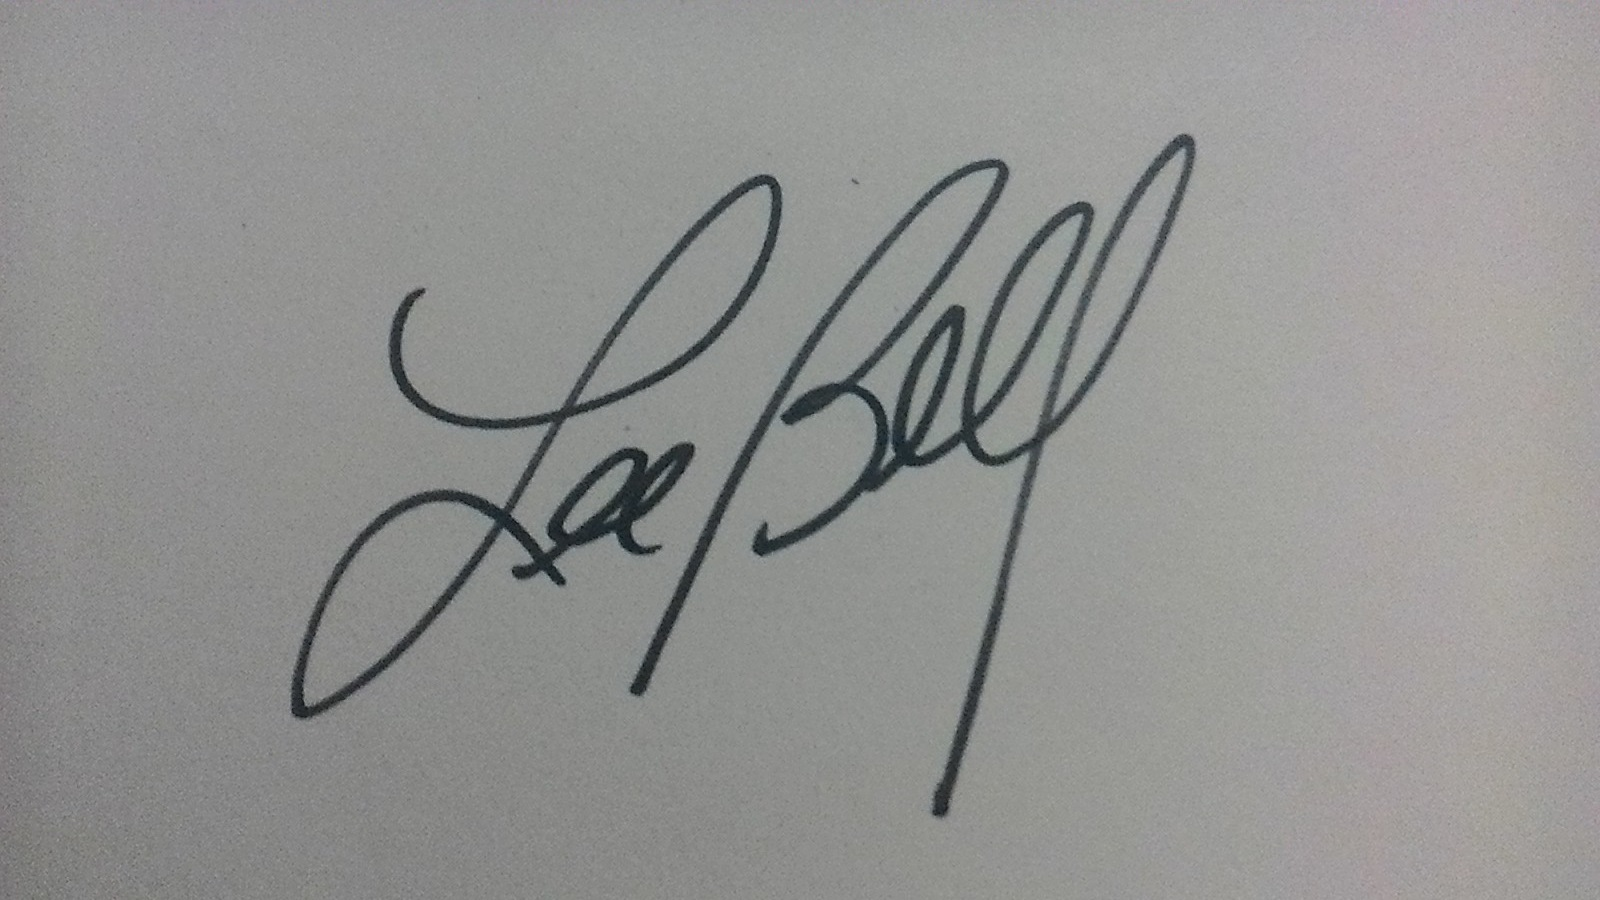 Lee Bell's Signature